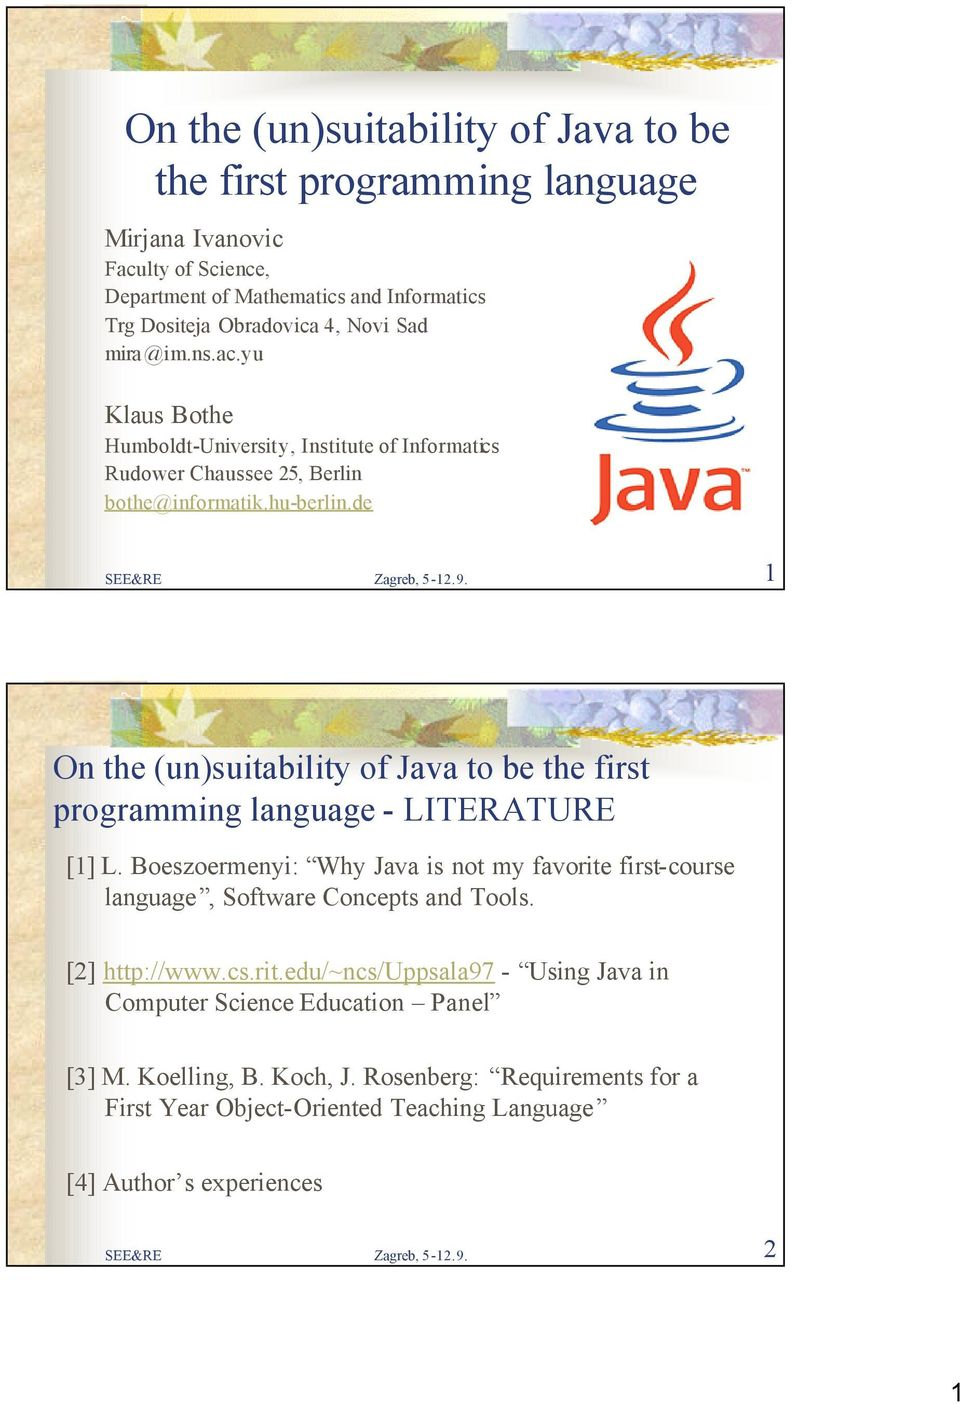 1 On the (un)suitability of Java to be the first programming language - LITERATURE [1] L. Boeszoermenyi: Why Java is not my favorite first-course language, Software Concepts and Tools.